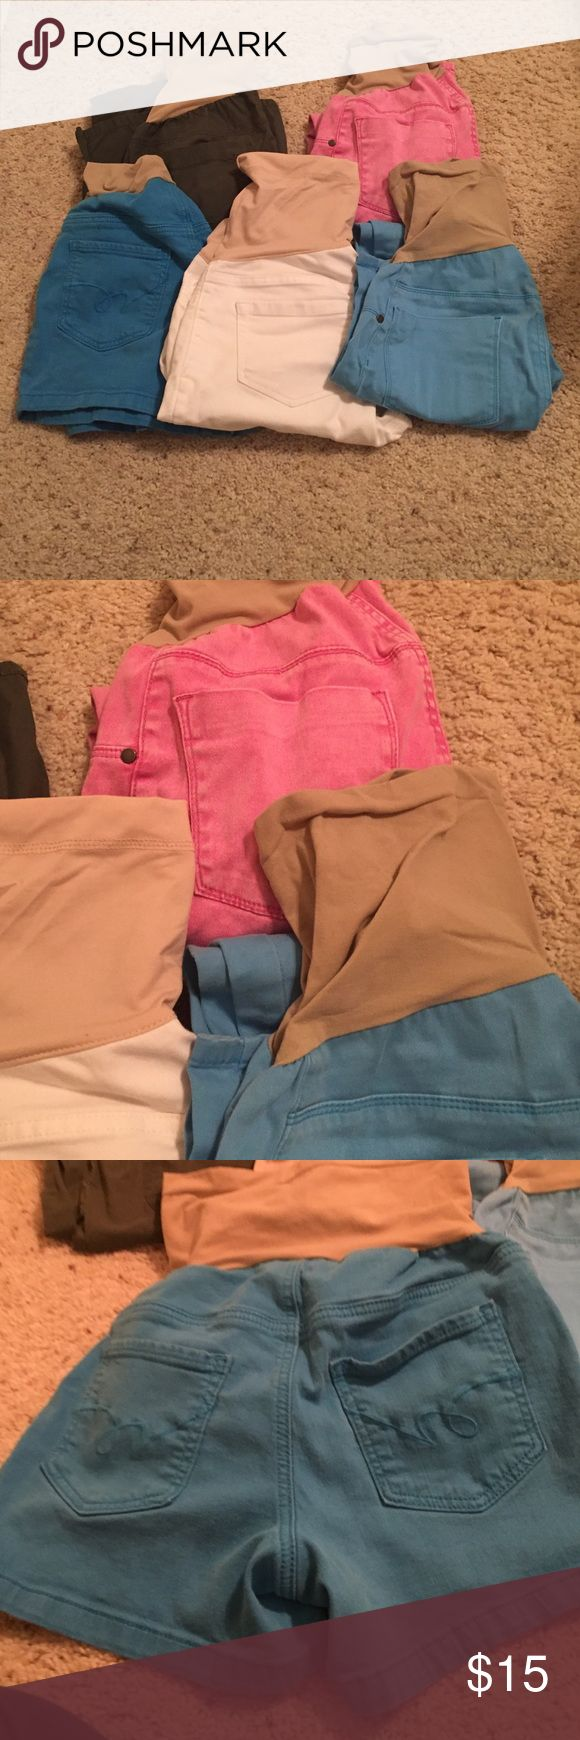 Maternity Bundle👶🏻🎉❤️ Pink Pant Size Small Ankle Jean, Blue Pant Size Small Ankle Jean, White Pant Size Medium Ankle Jean. Green Pant Size Medium Boot Cut. Blue Shorts Size Small. I wore all throughout both pregnancies. Good Condition. Brands include: Motherhood, Indigo Blue, Liz Lange. Price Firm. Motherhood Maternity Pants Ankle & Cropped